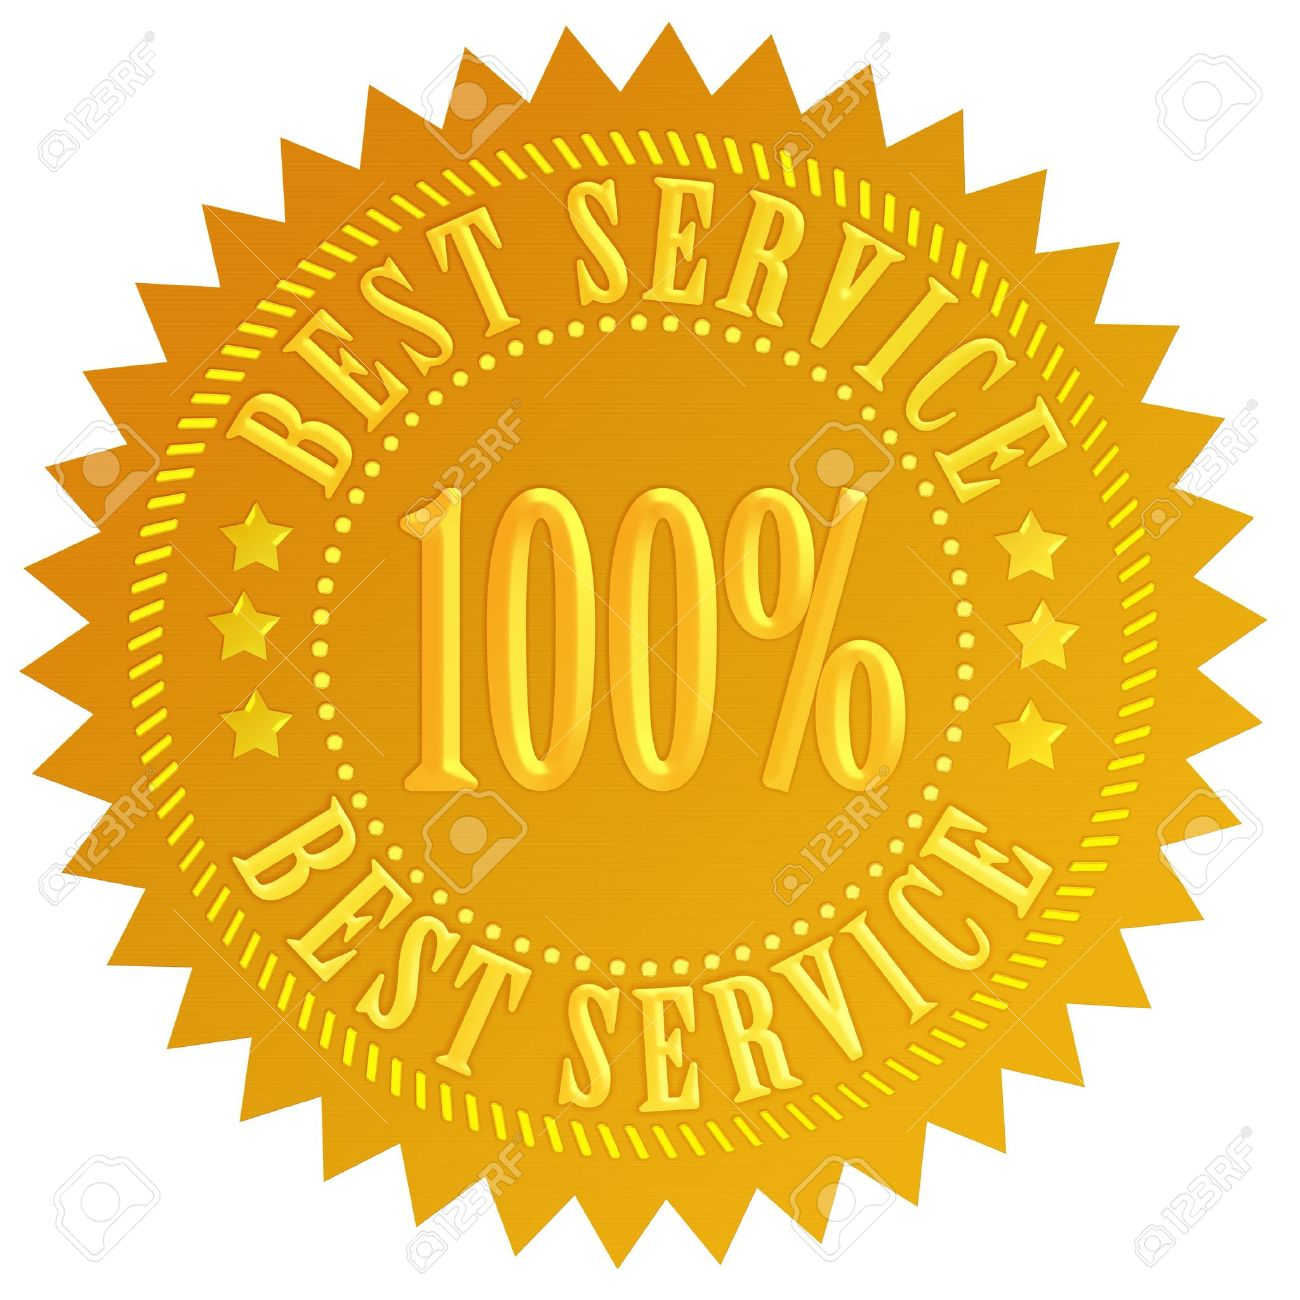 Best service seal Stock Photo - 8222781